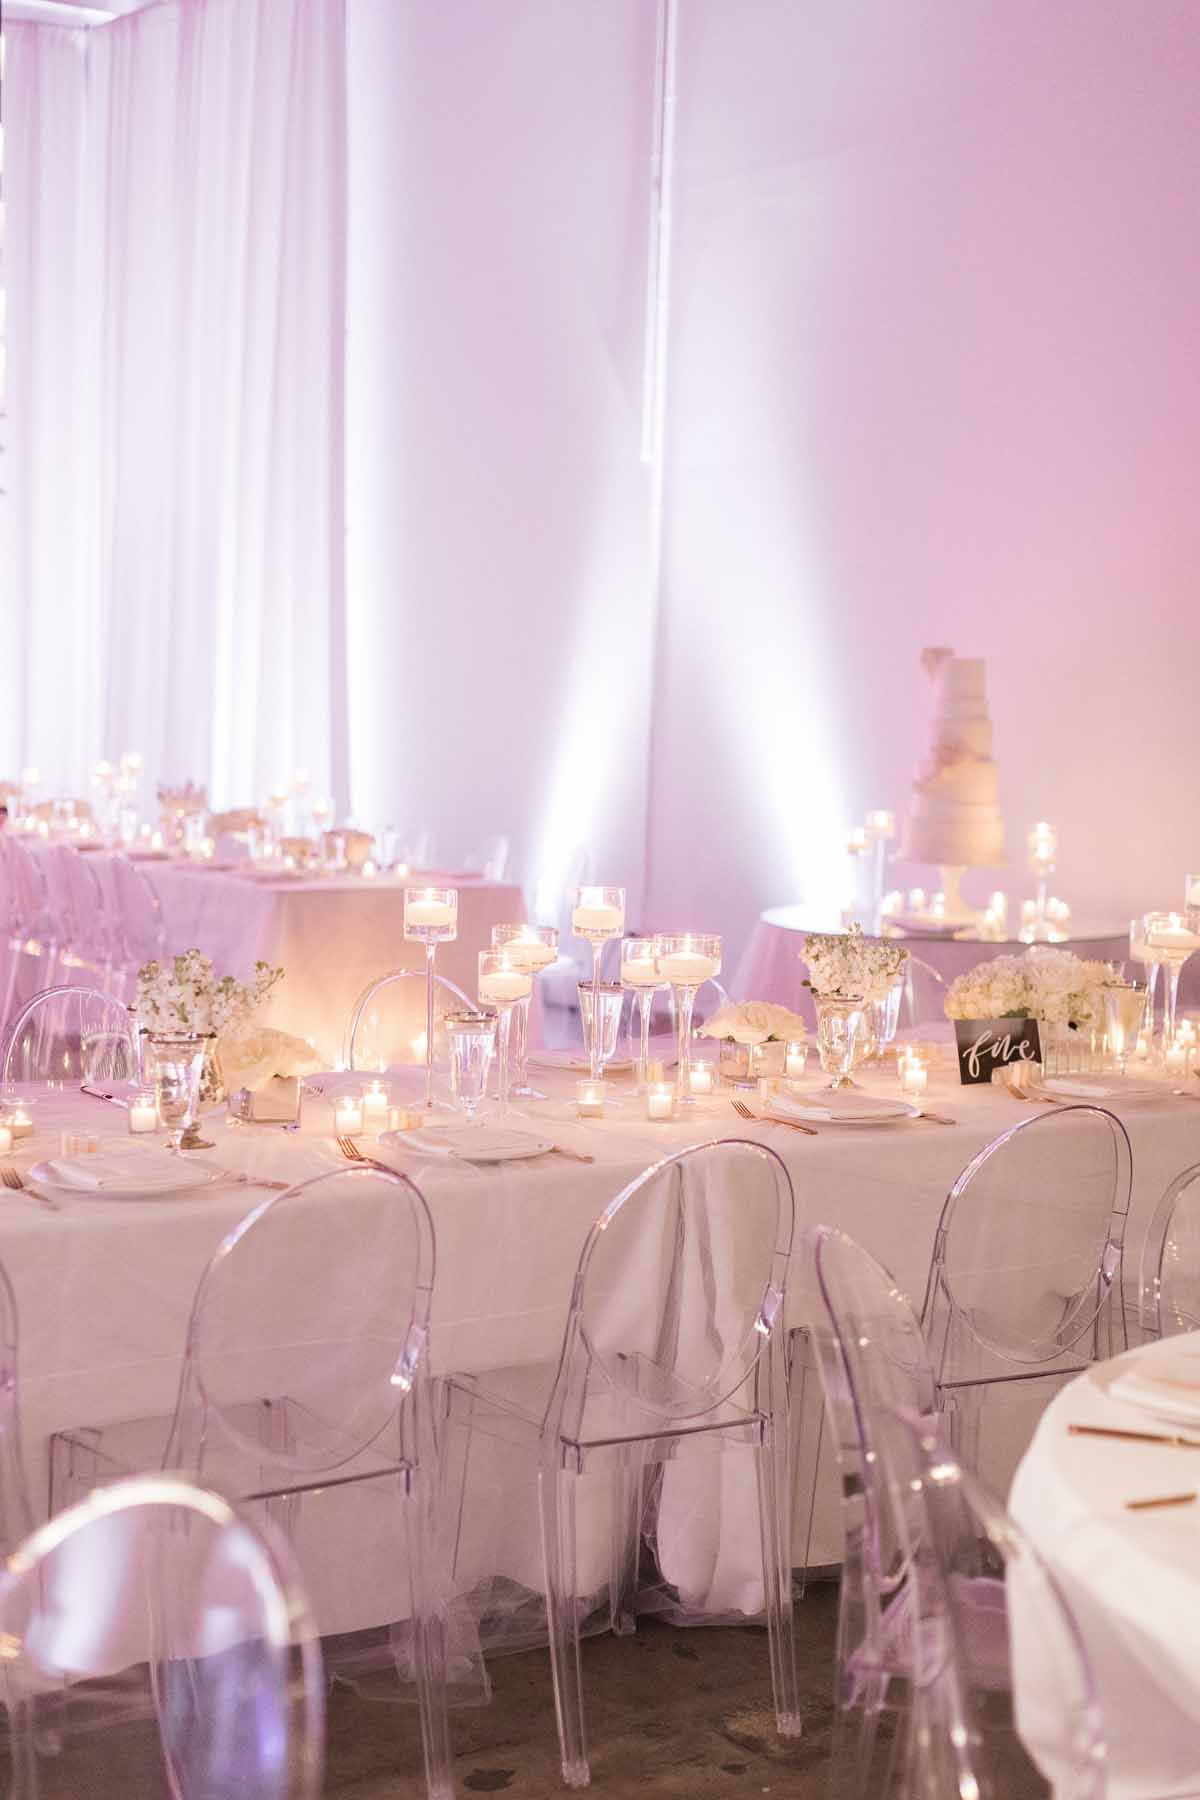 Modern white wedding at Canvas Event Space in Seattle: floating candles and white centerpieces, with white draping, white linens, clear lucite chairs - by Flora Nova Design